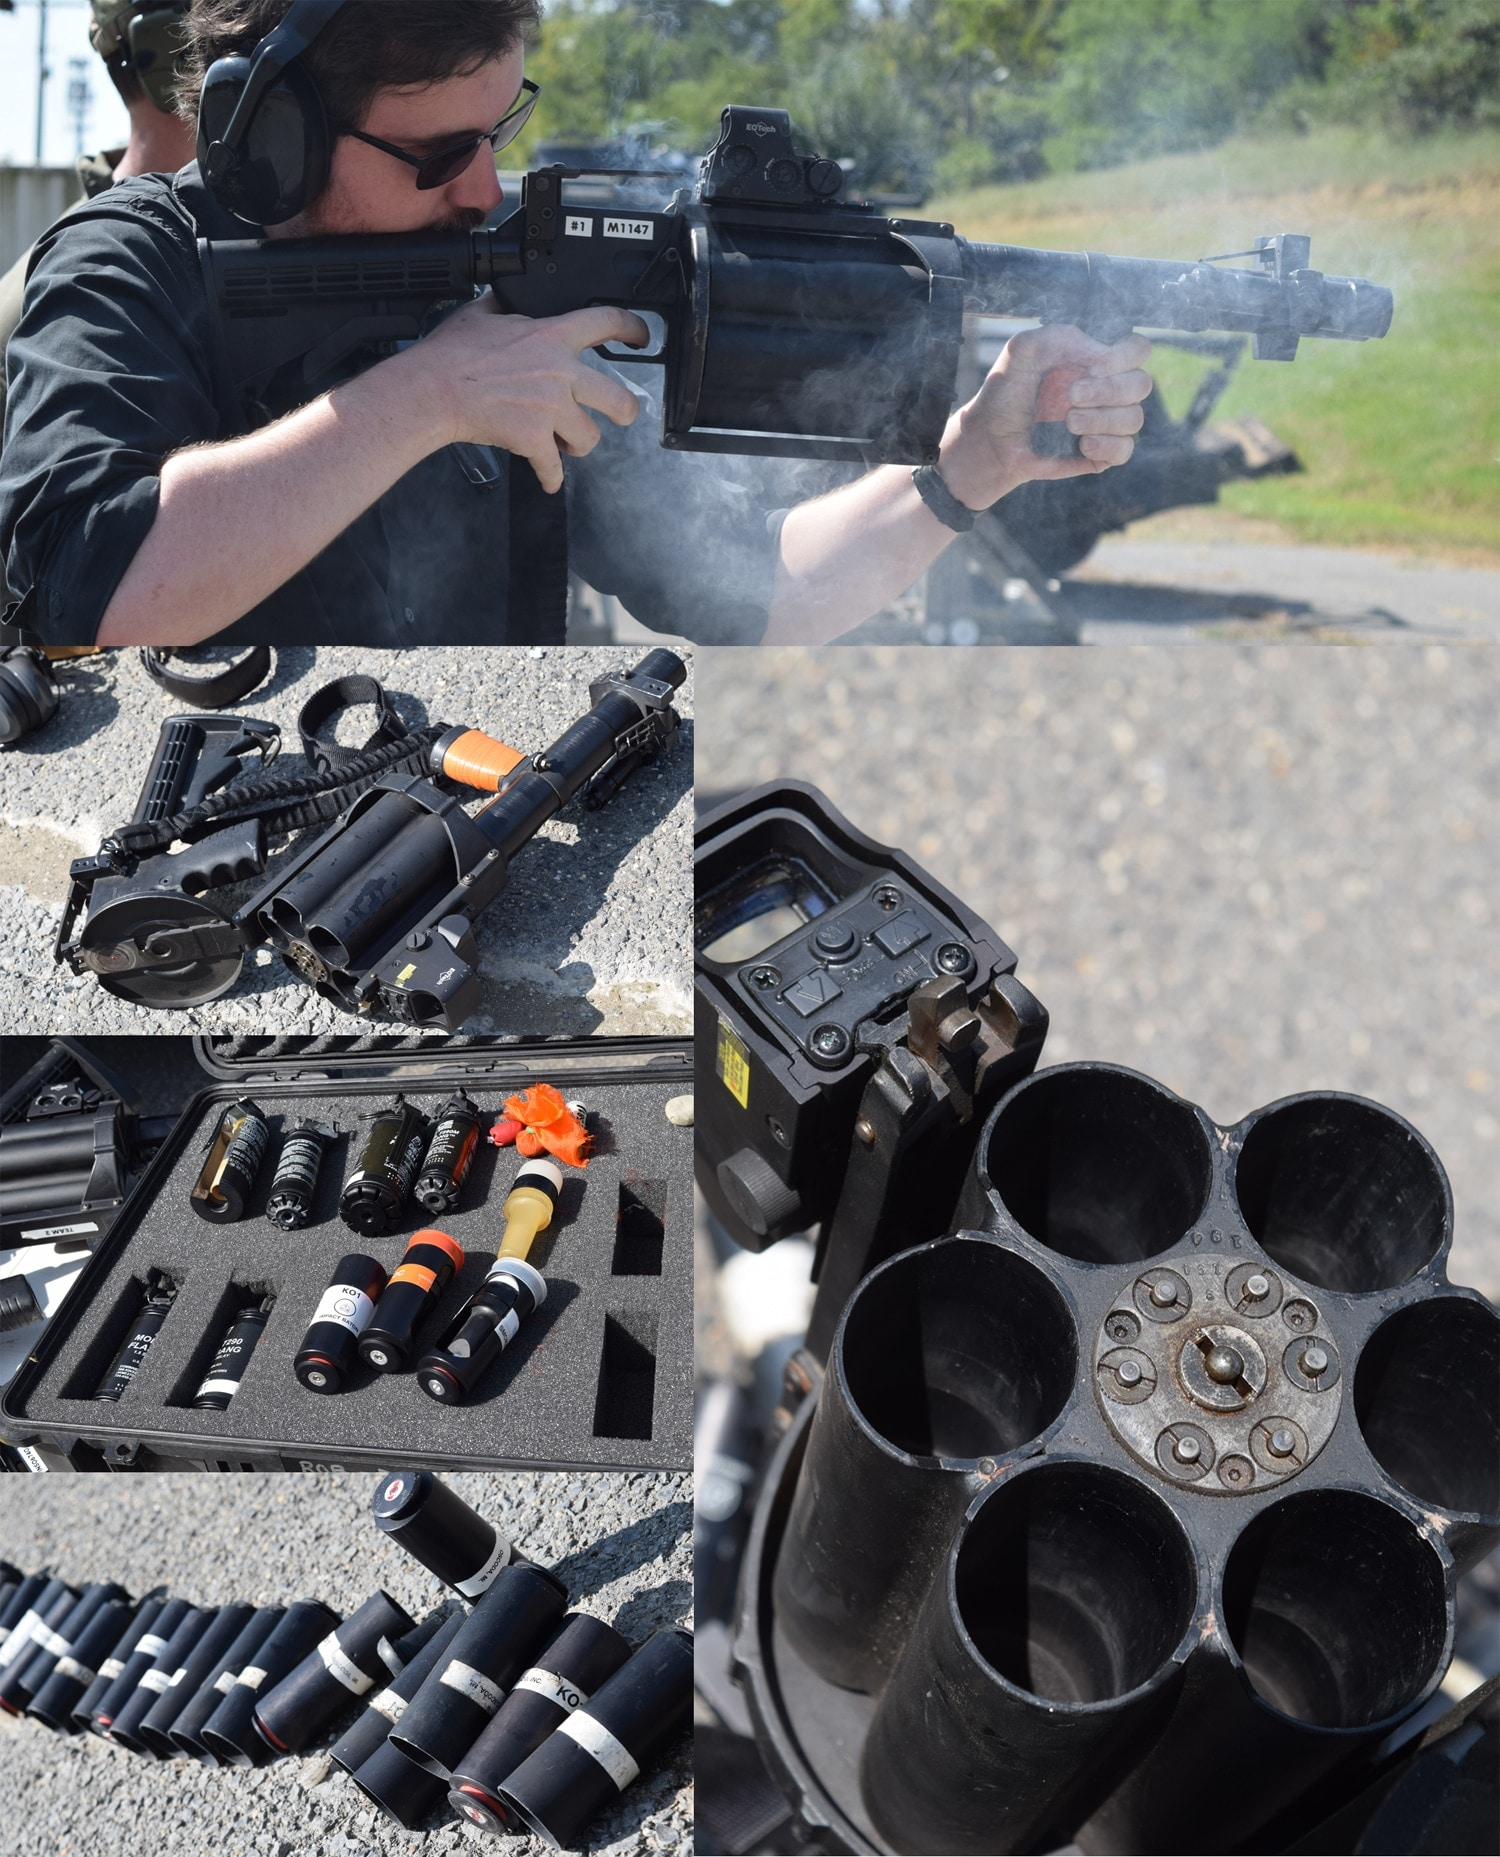 The many sides of a less lethal launcher. The device shoots canisters often containing rubber bullets, but there's a wide range of ammunition. (Photo: Daniel Terrill/Guns.com)